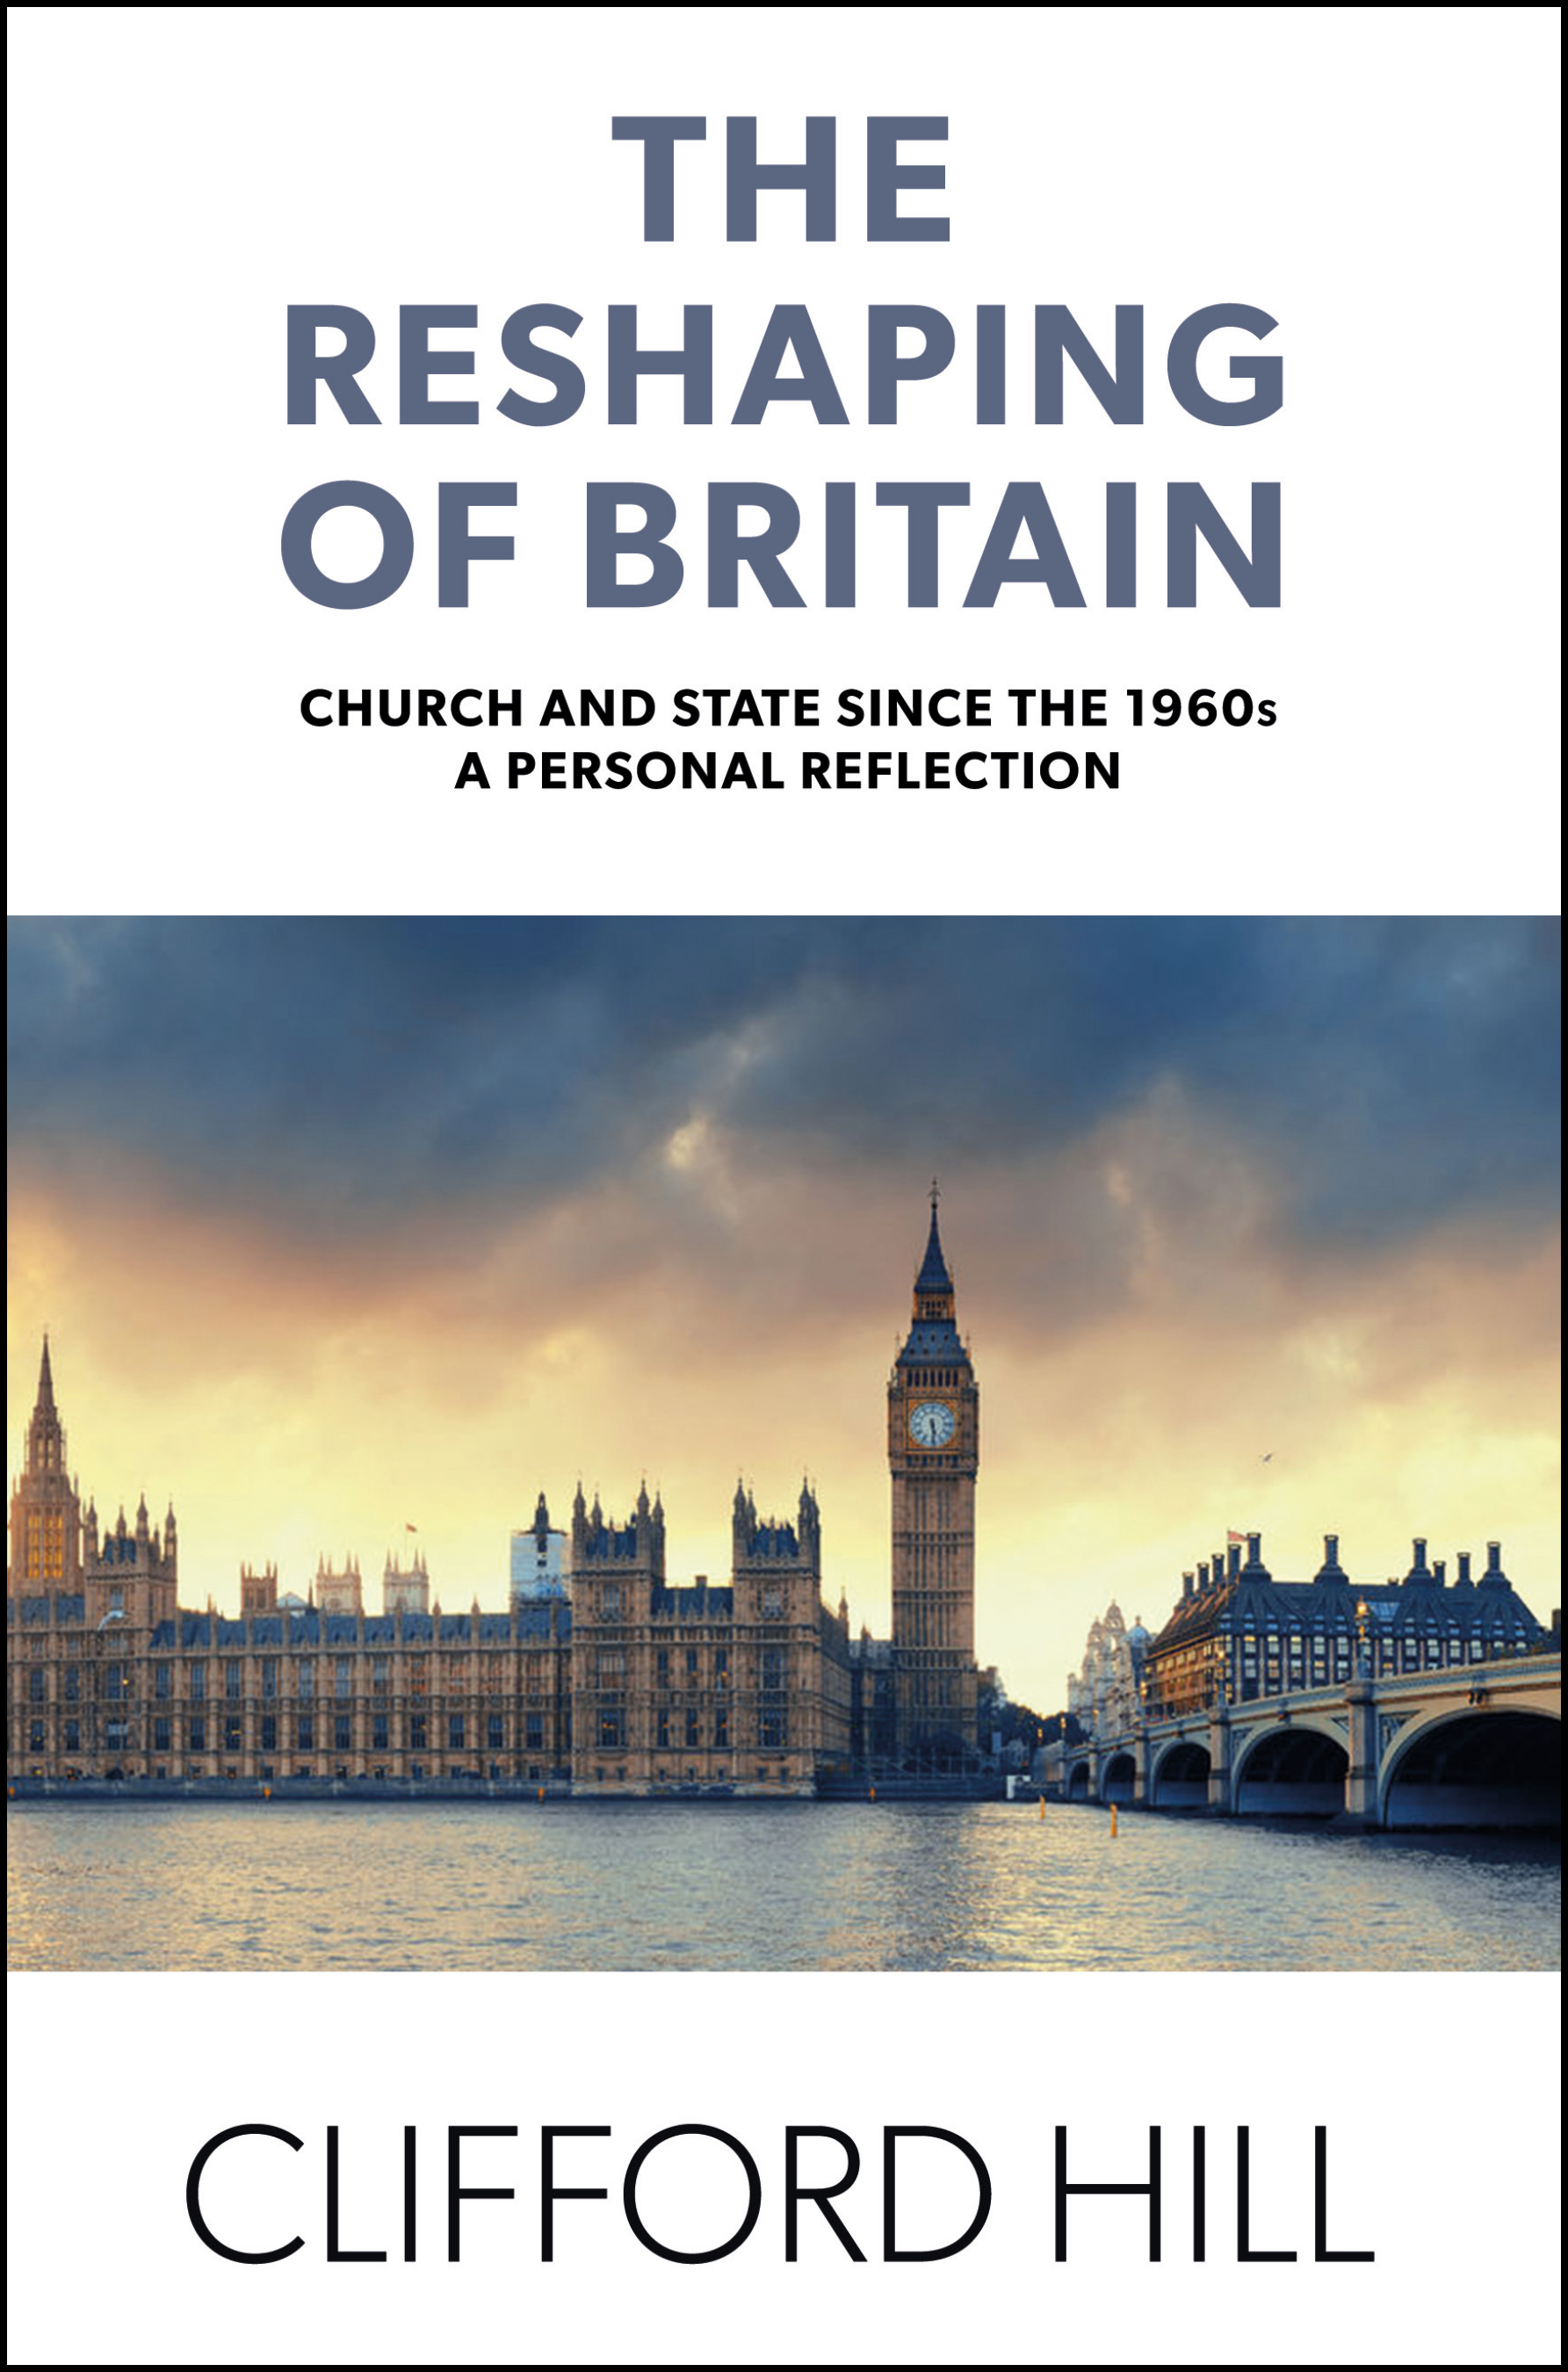 The Reshaping of Britain - A living record of contemporary history charting societal and spiritual changes over 60 years